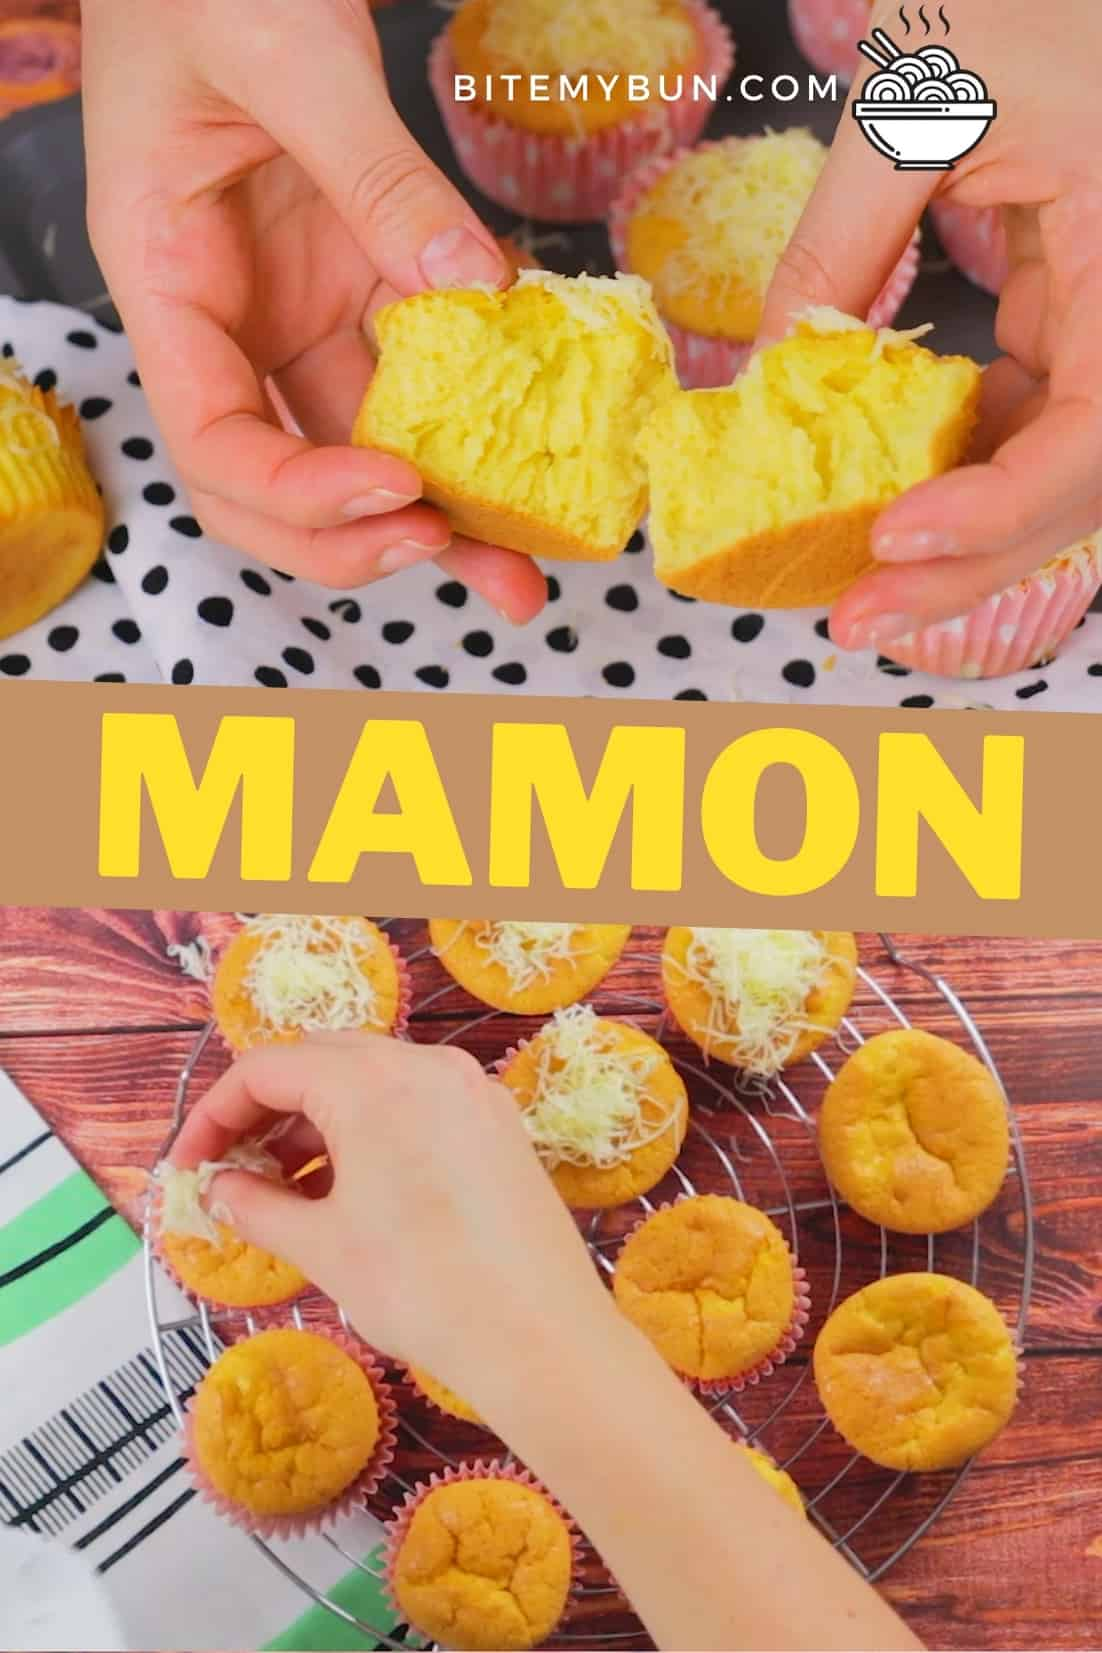 Filipino mamon sponge cake